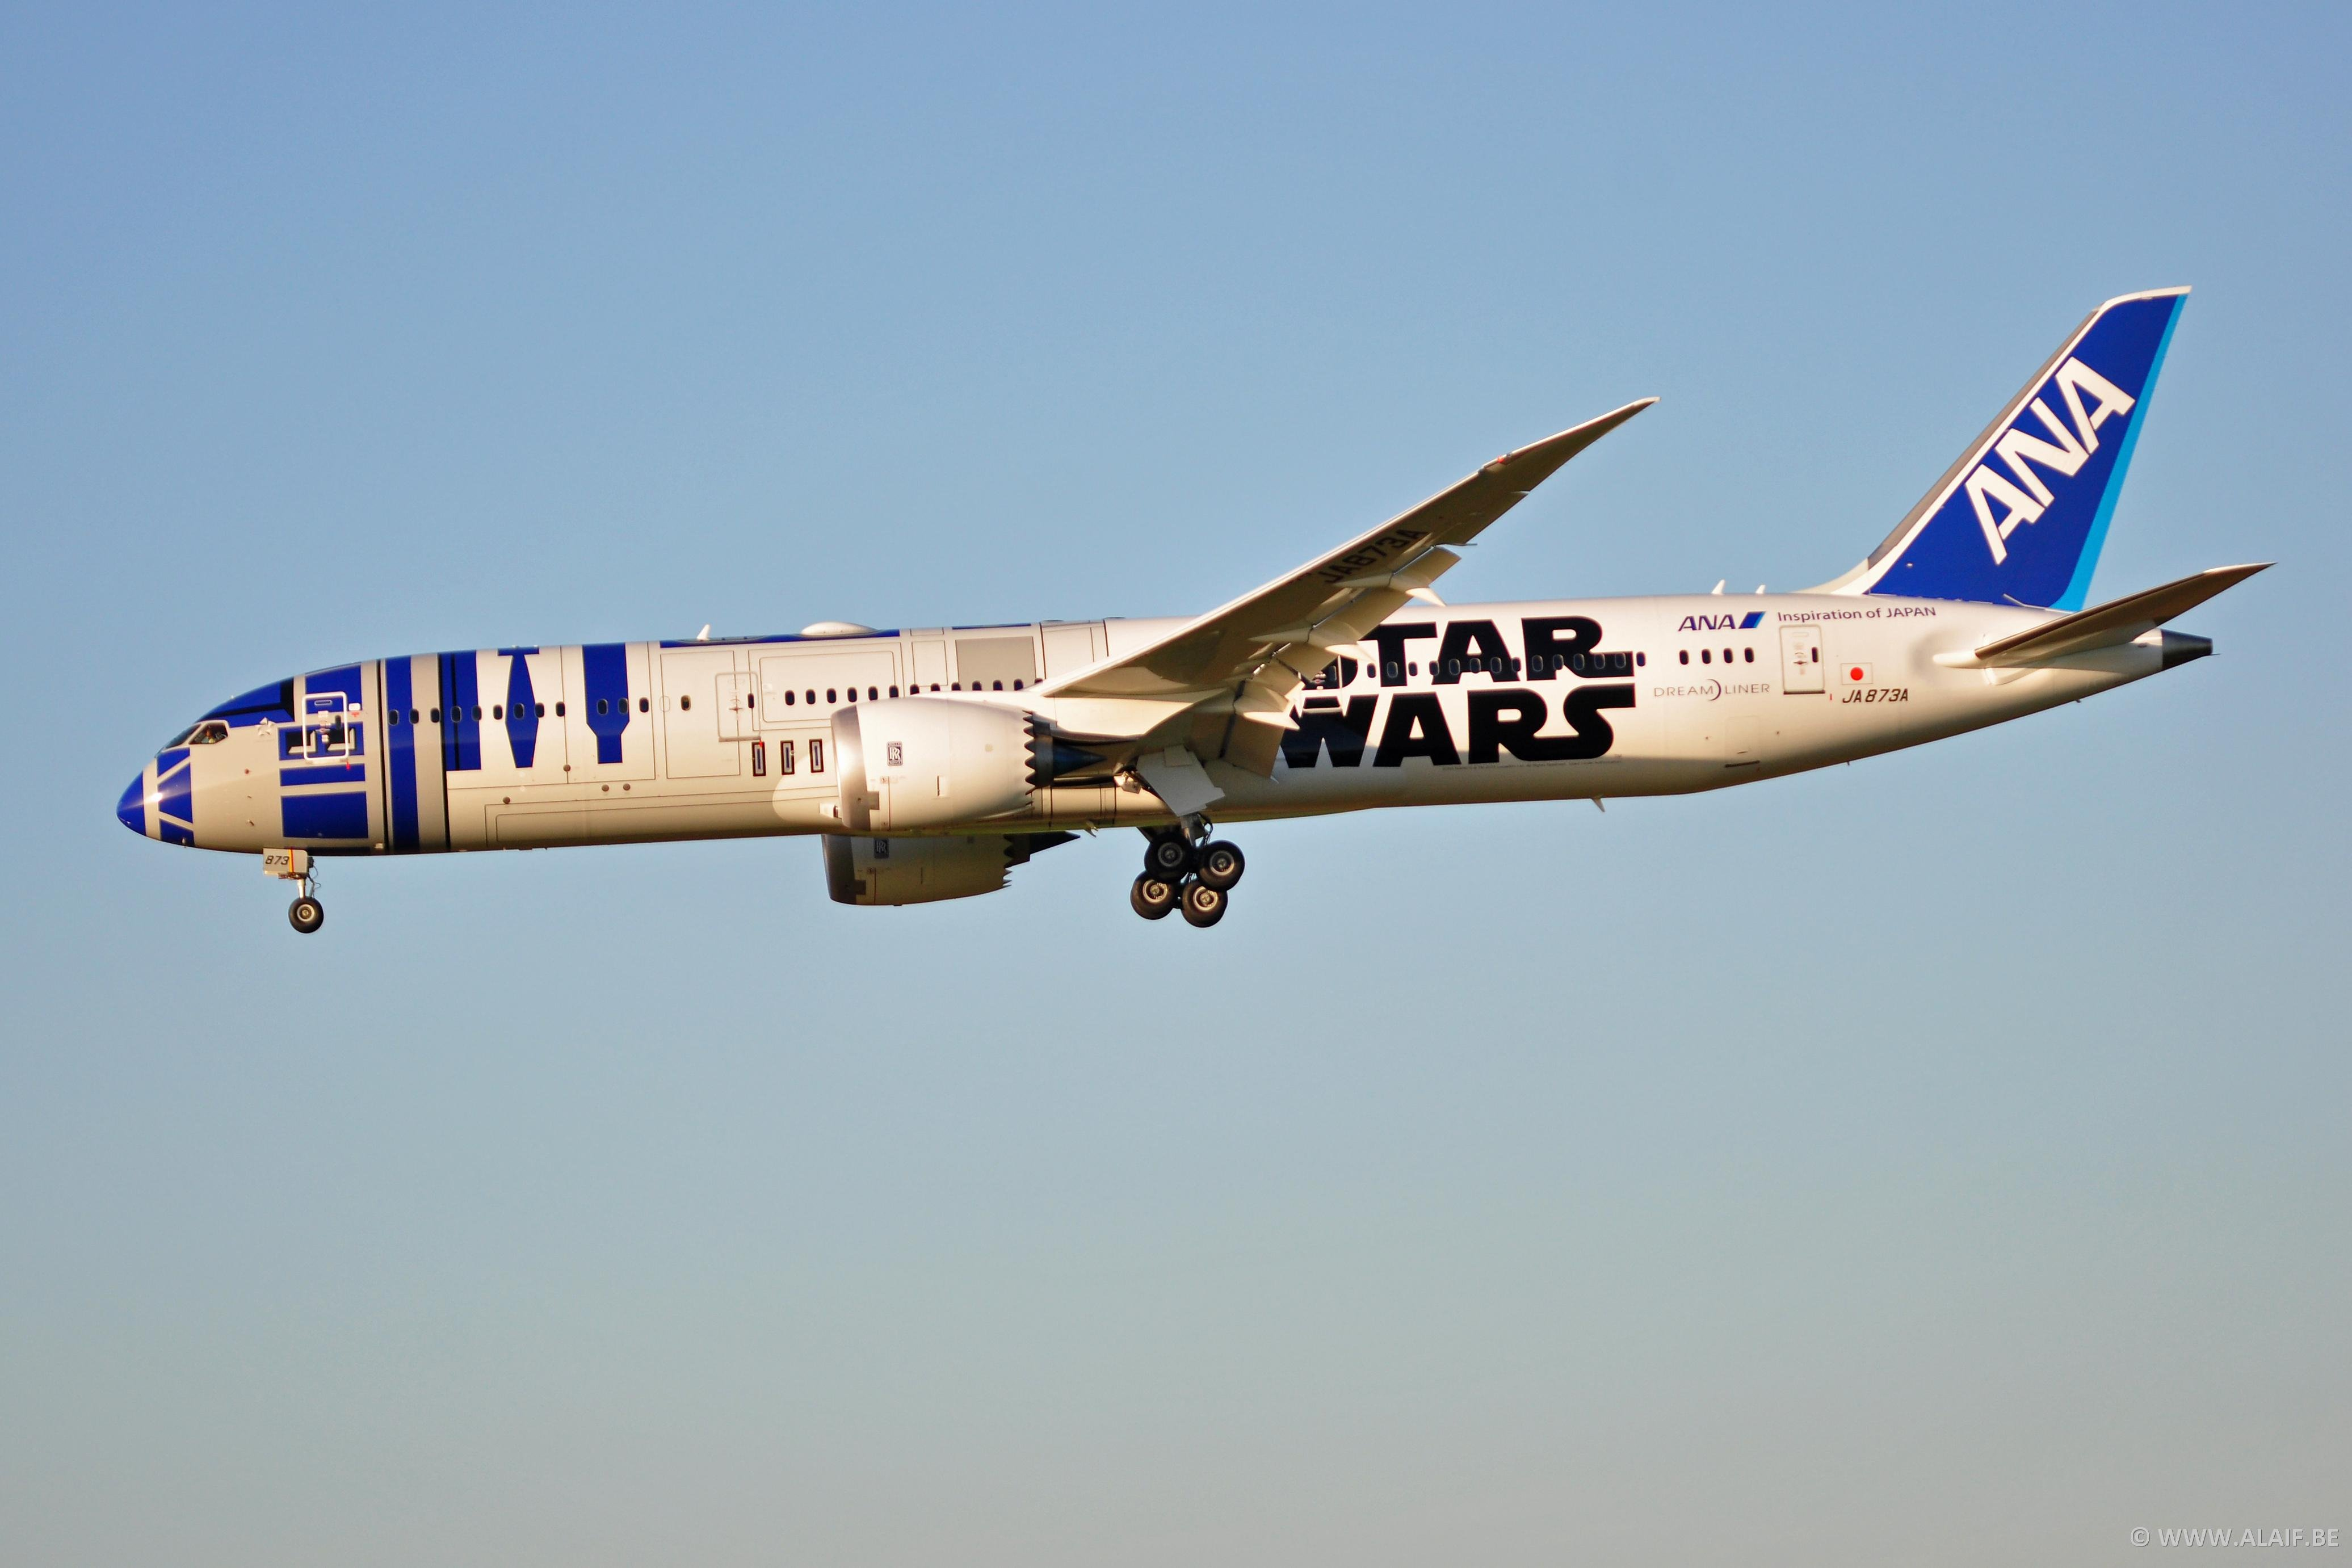 All Nipon Airlines - B 787 - Star Wars